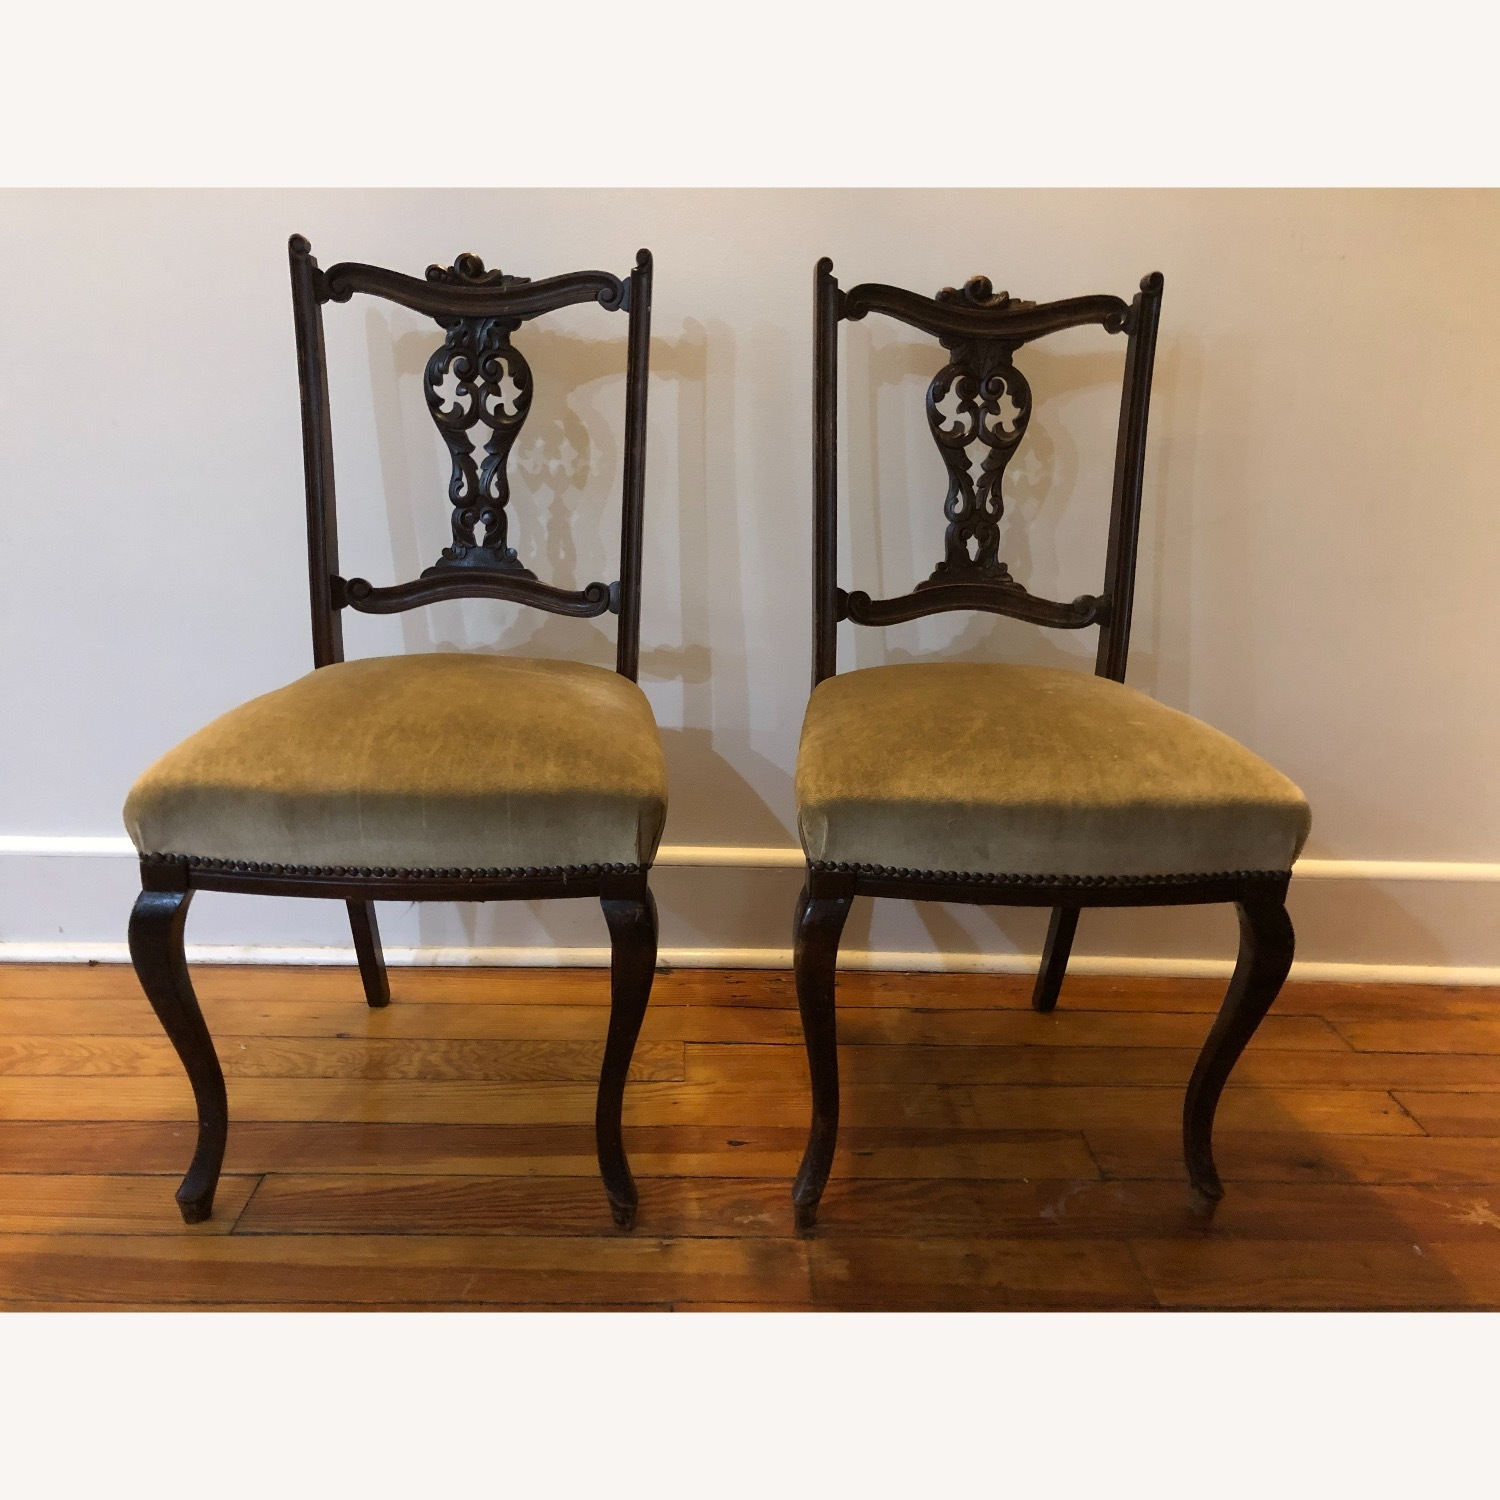 Victorian Accent Chairs - image-1